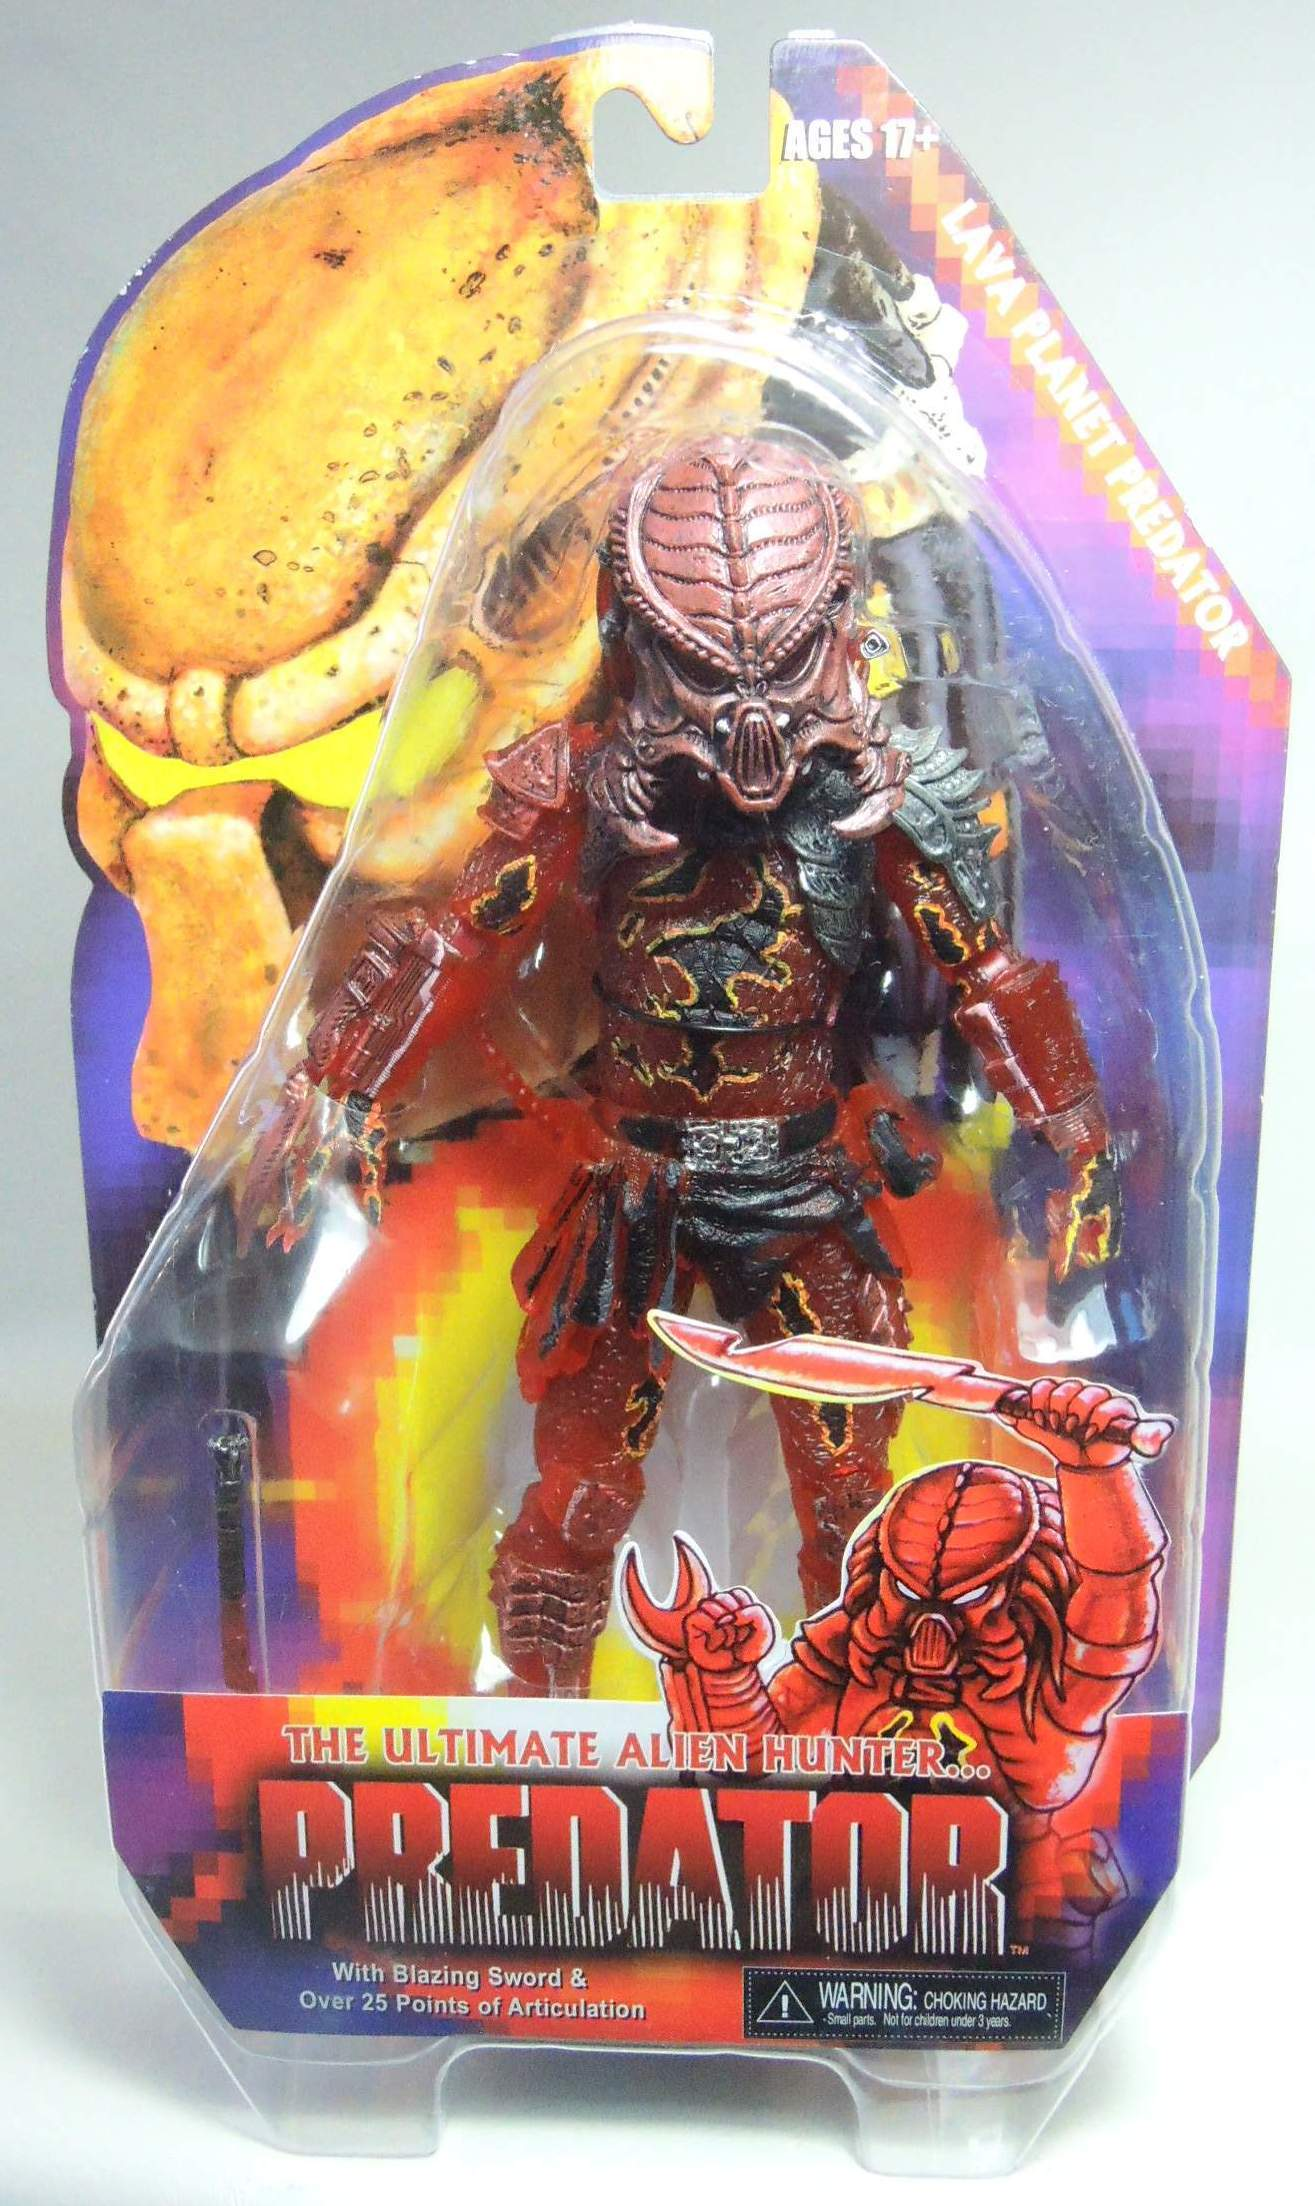 NECA Predators Series 10 Lava Planet Predator NECA, Predators, Action Figures, 2013, scifi, movie